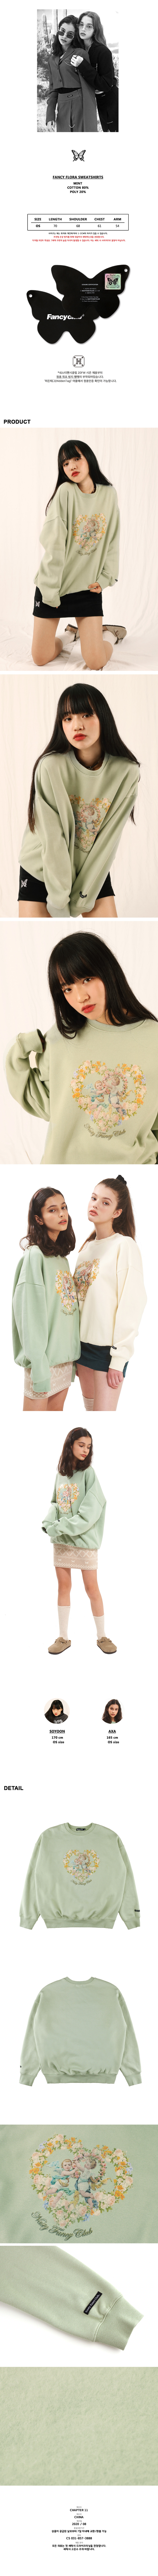 F585 FANCY FLORA SWEATSHIRTS (MINT).jpg